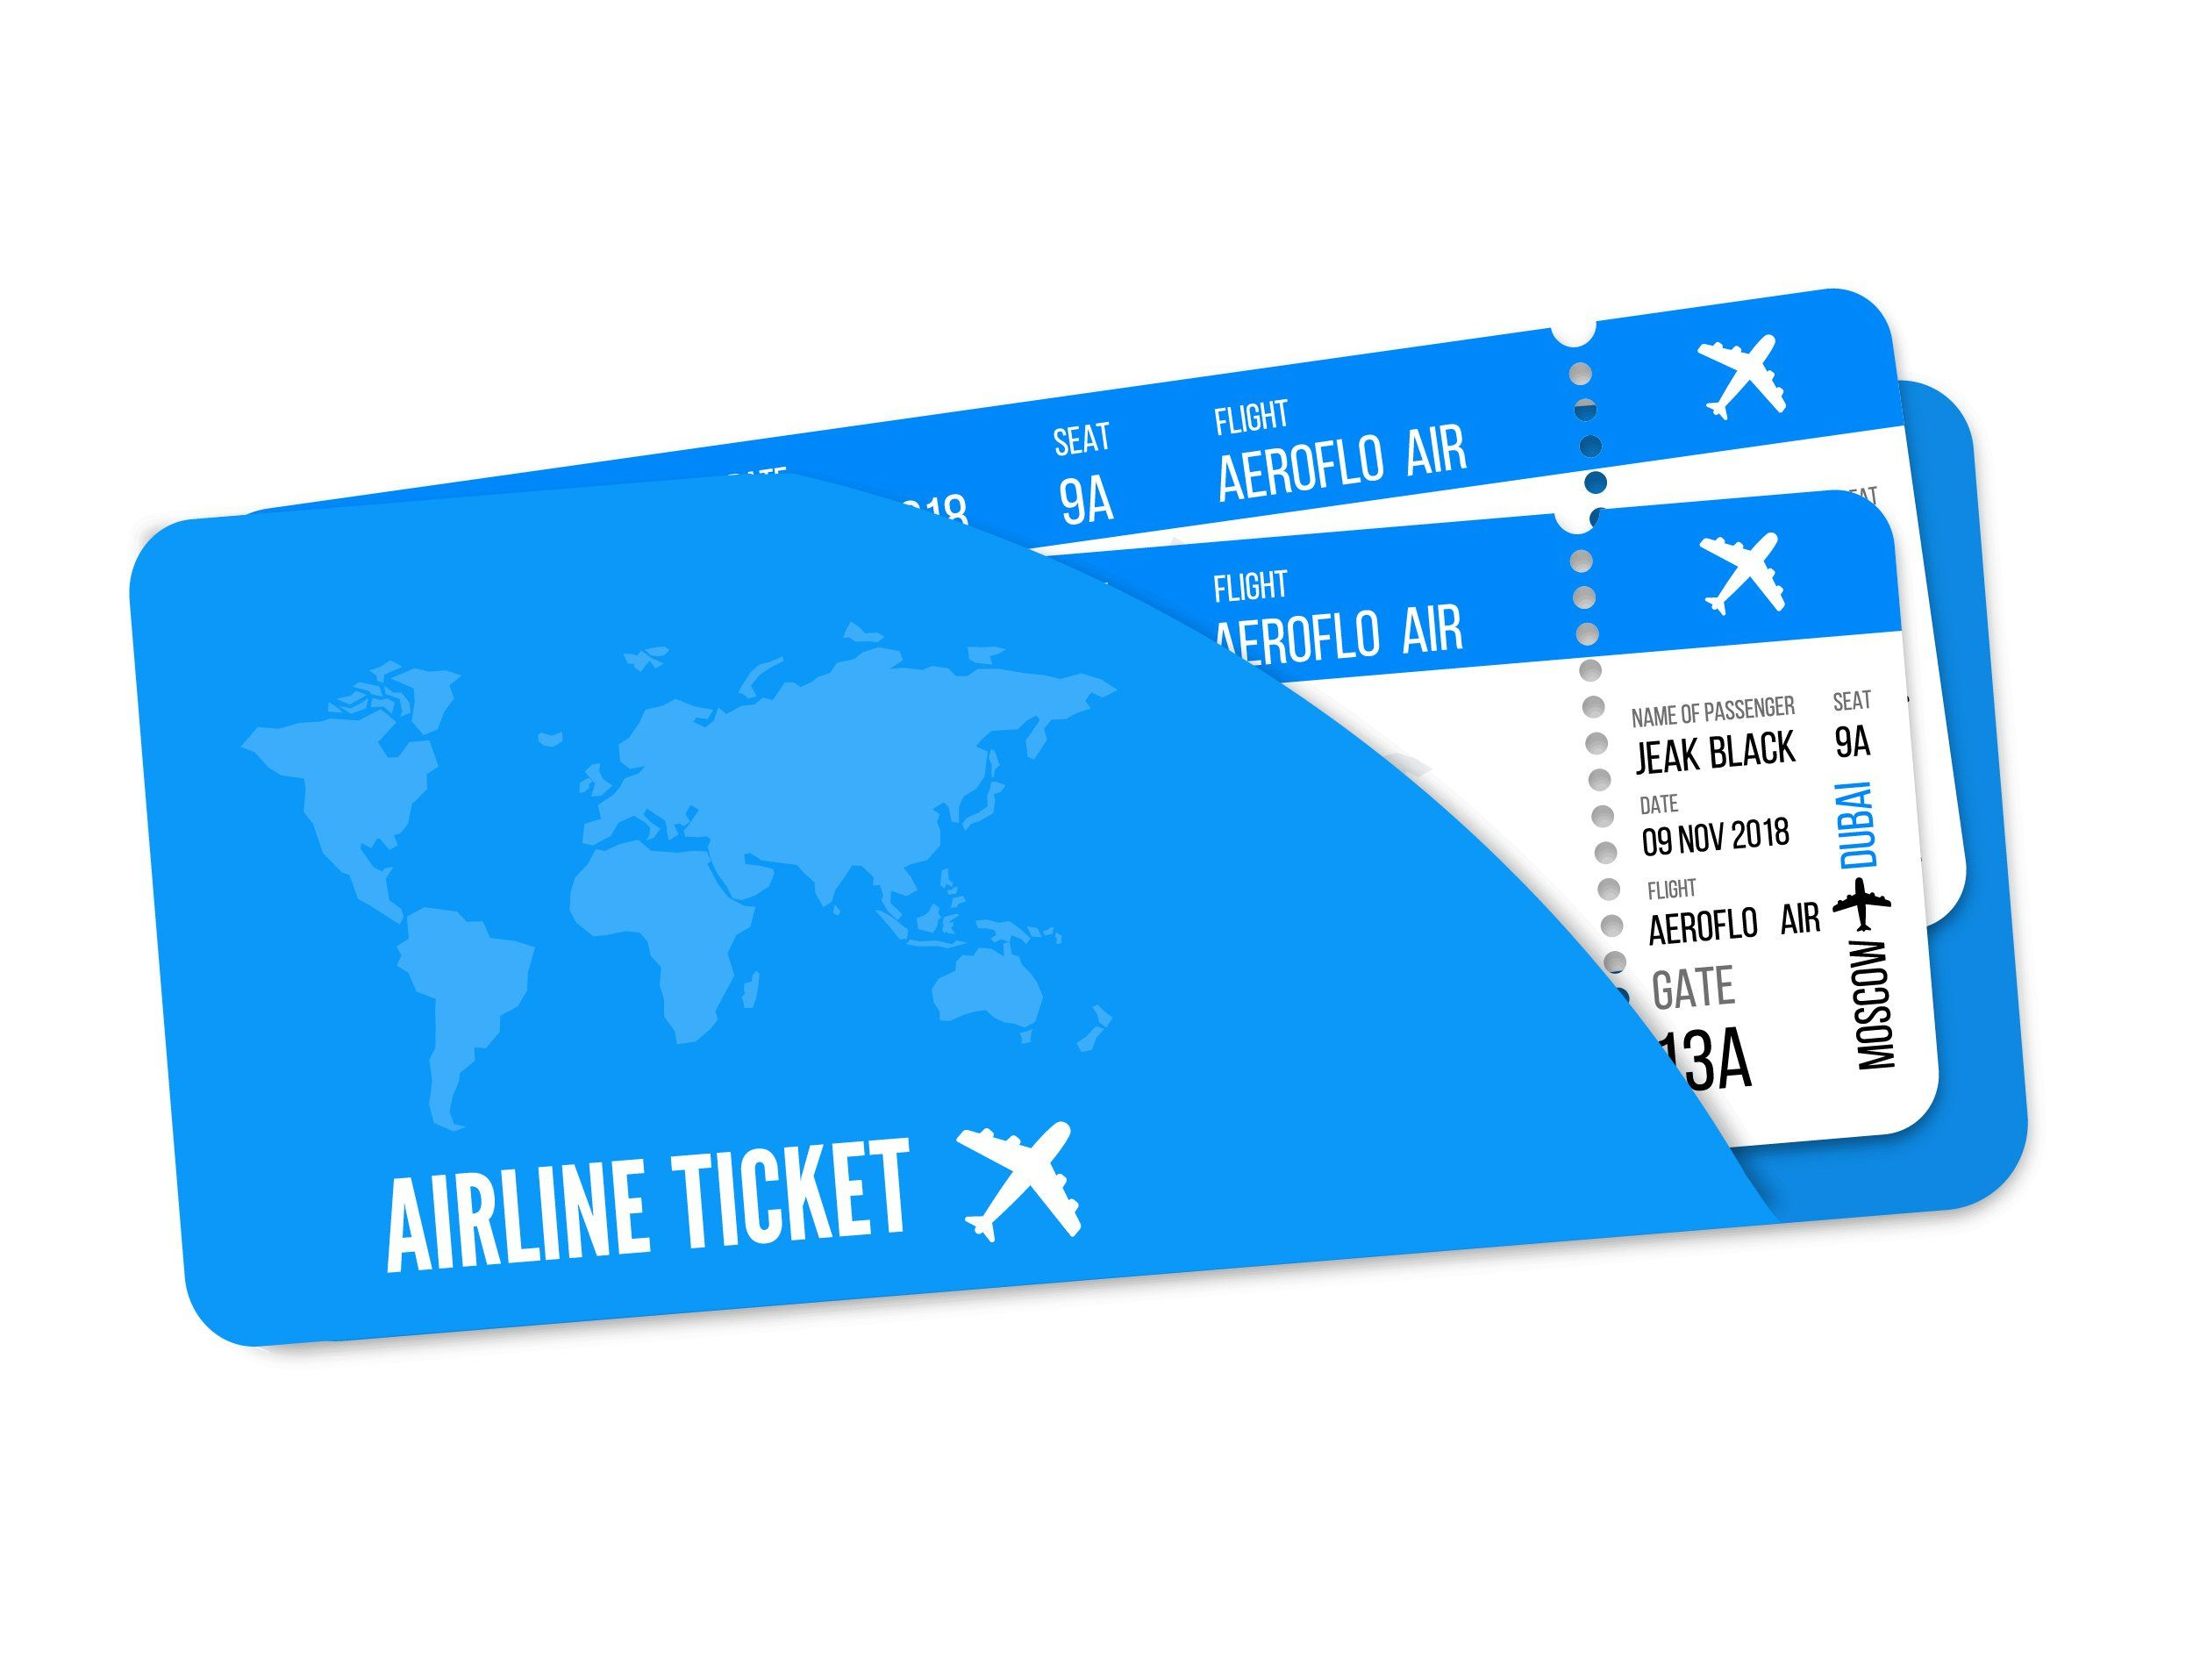 Realistic airline ticket design | Airline tickets, Ticket design, Airline